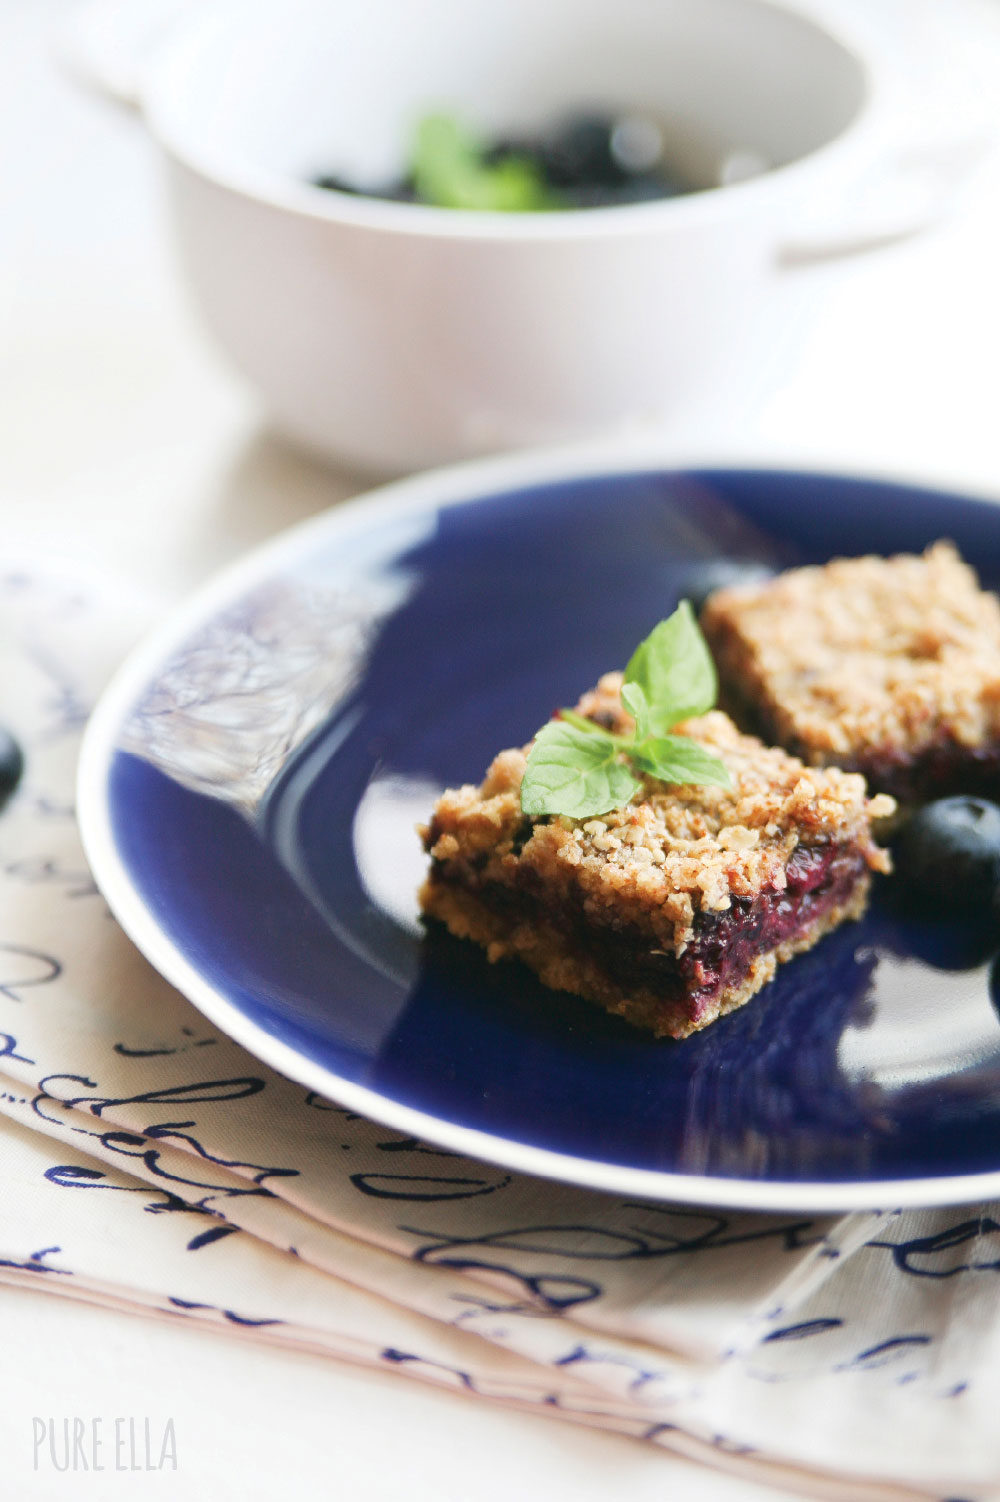 Pure-Ella-gluten-free-vegan-blueberry-blackberry-crumb-squares10